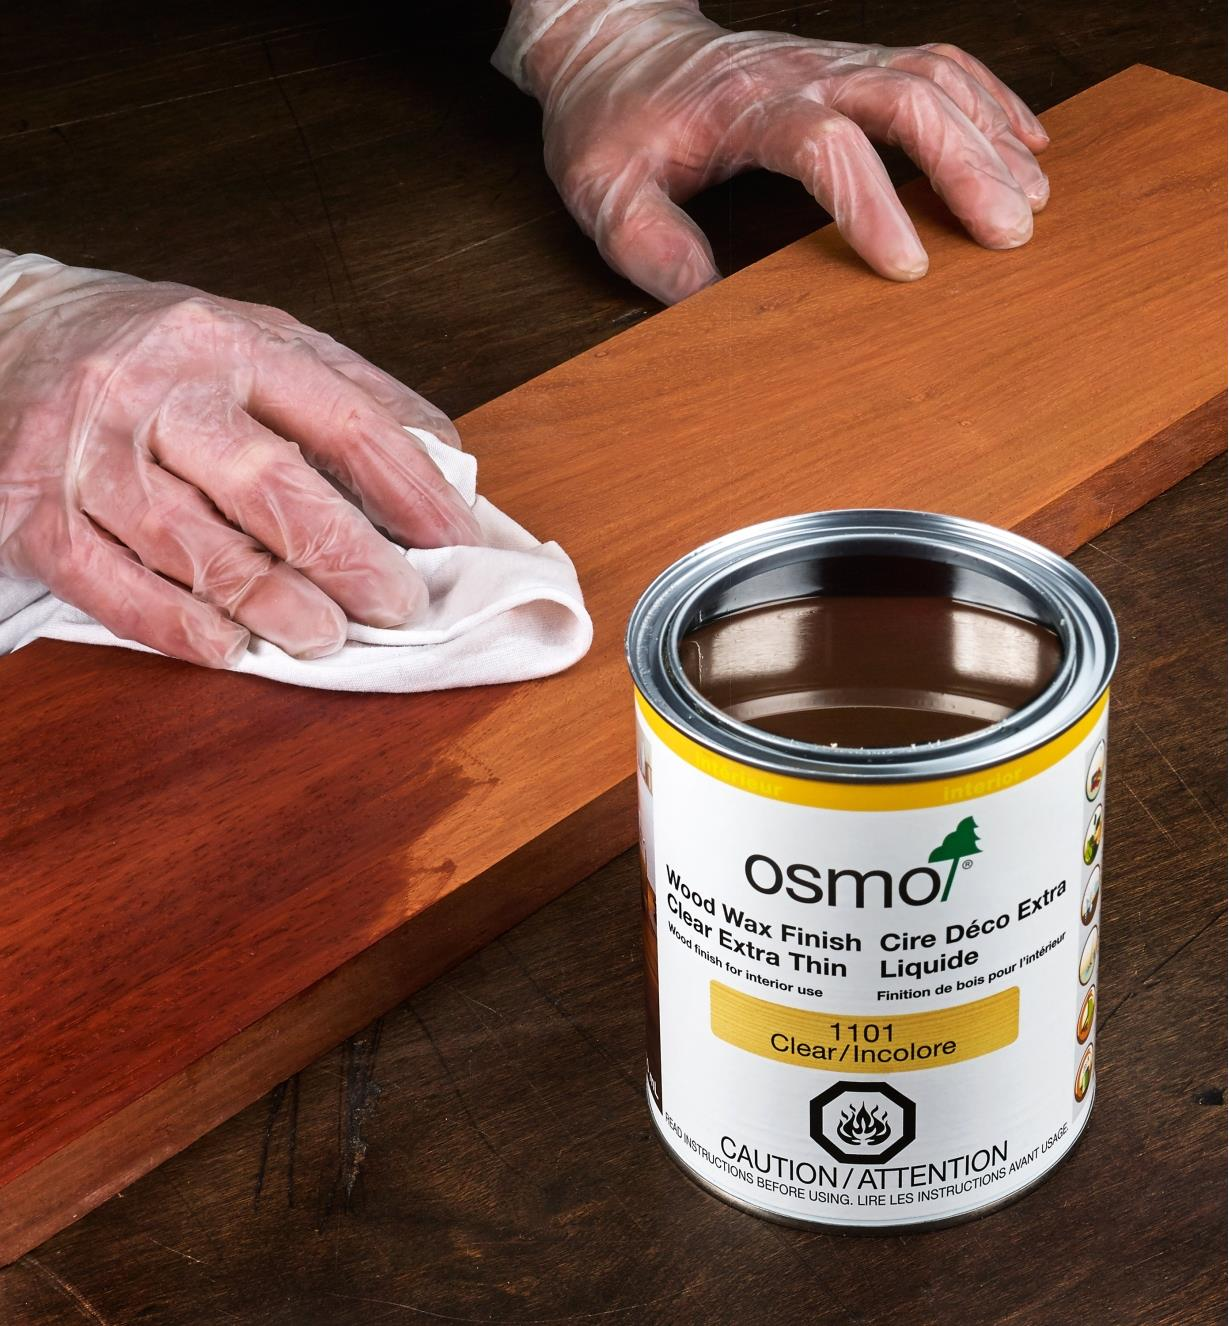 Using a cloth to apply Osmo extra-thin wood wax to a wood surface